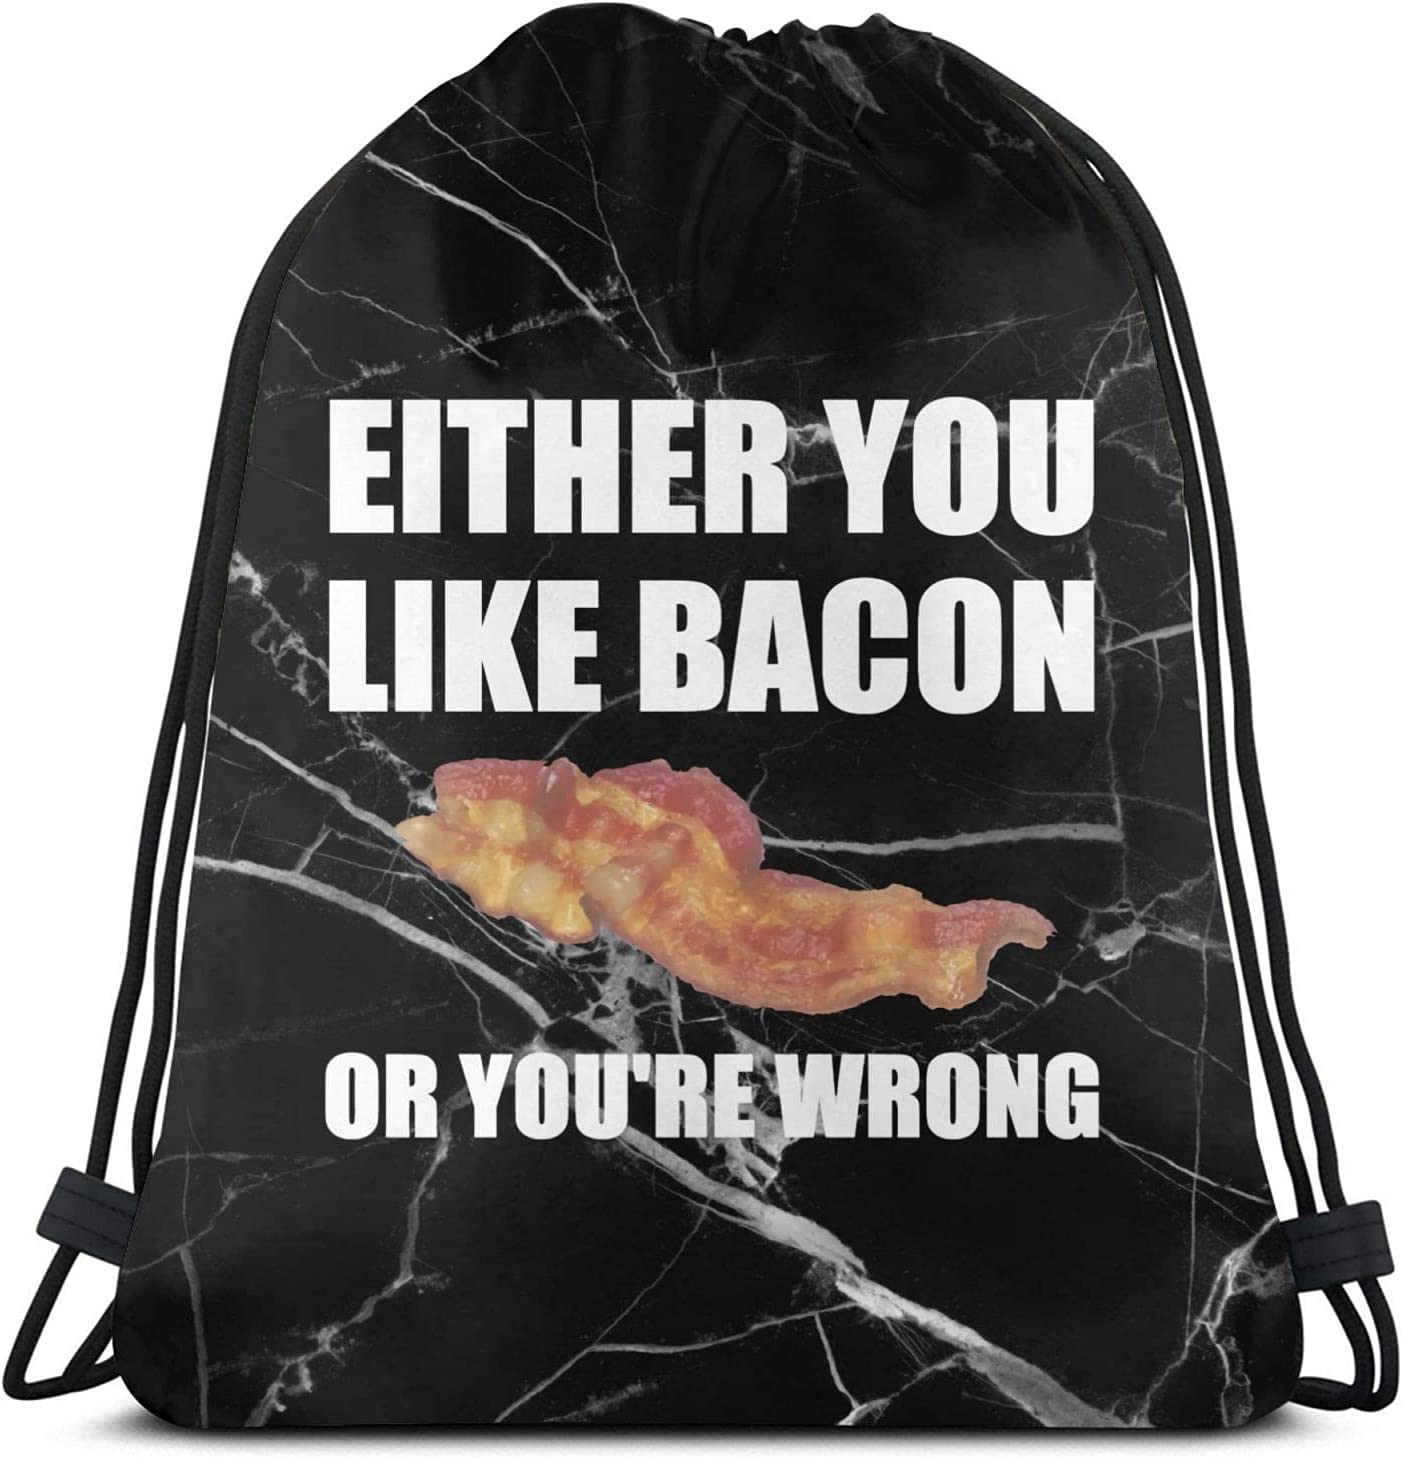 Bacon Or Wrong Drawstring Backpack 40% OFF Cheap Sale String Draw Bags free shipping Gym Sports